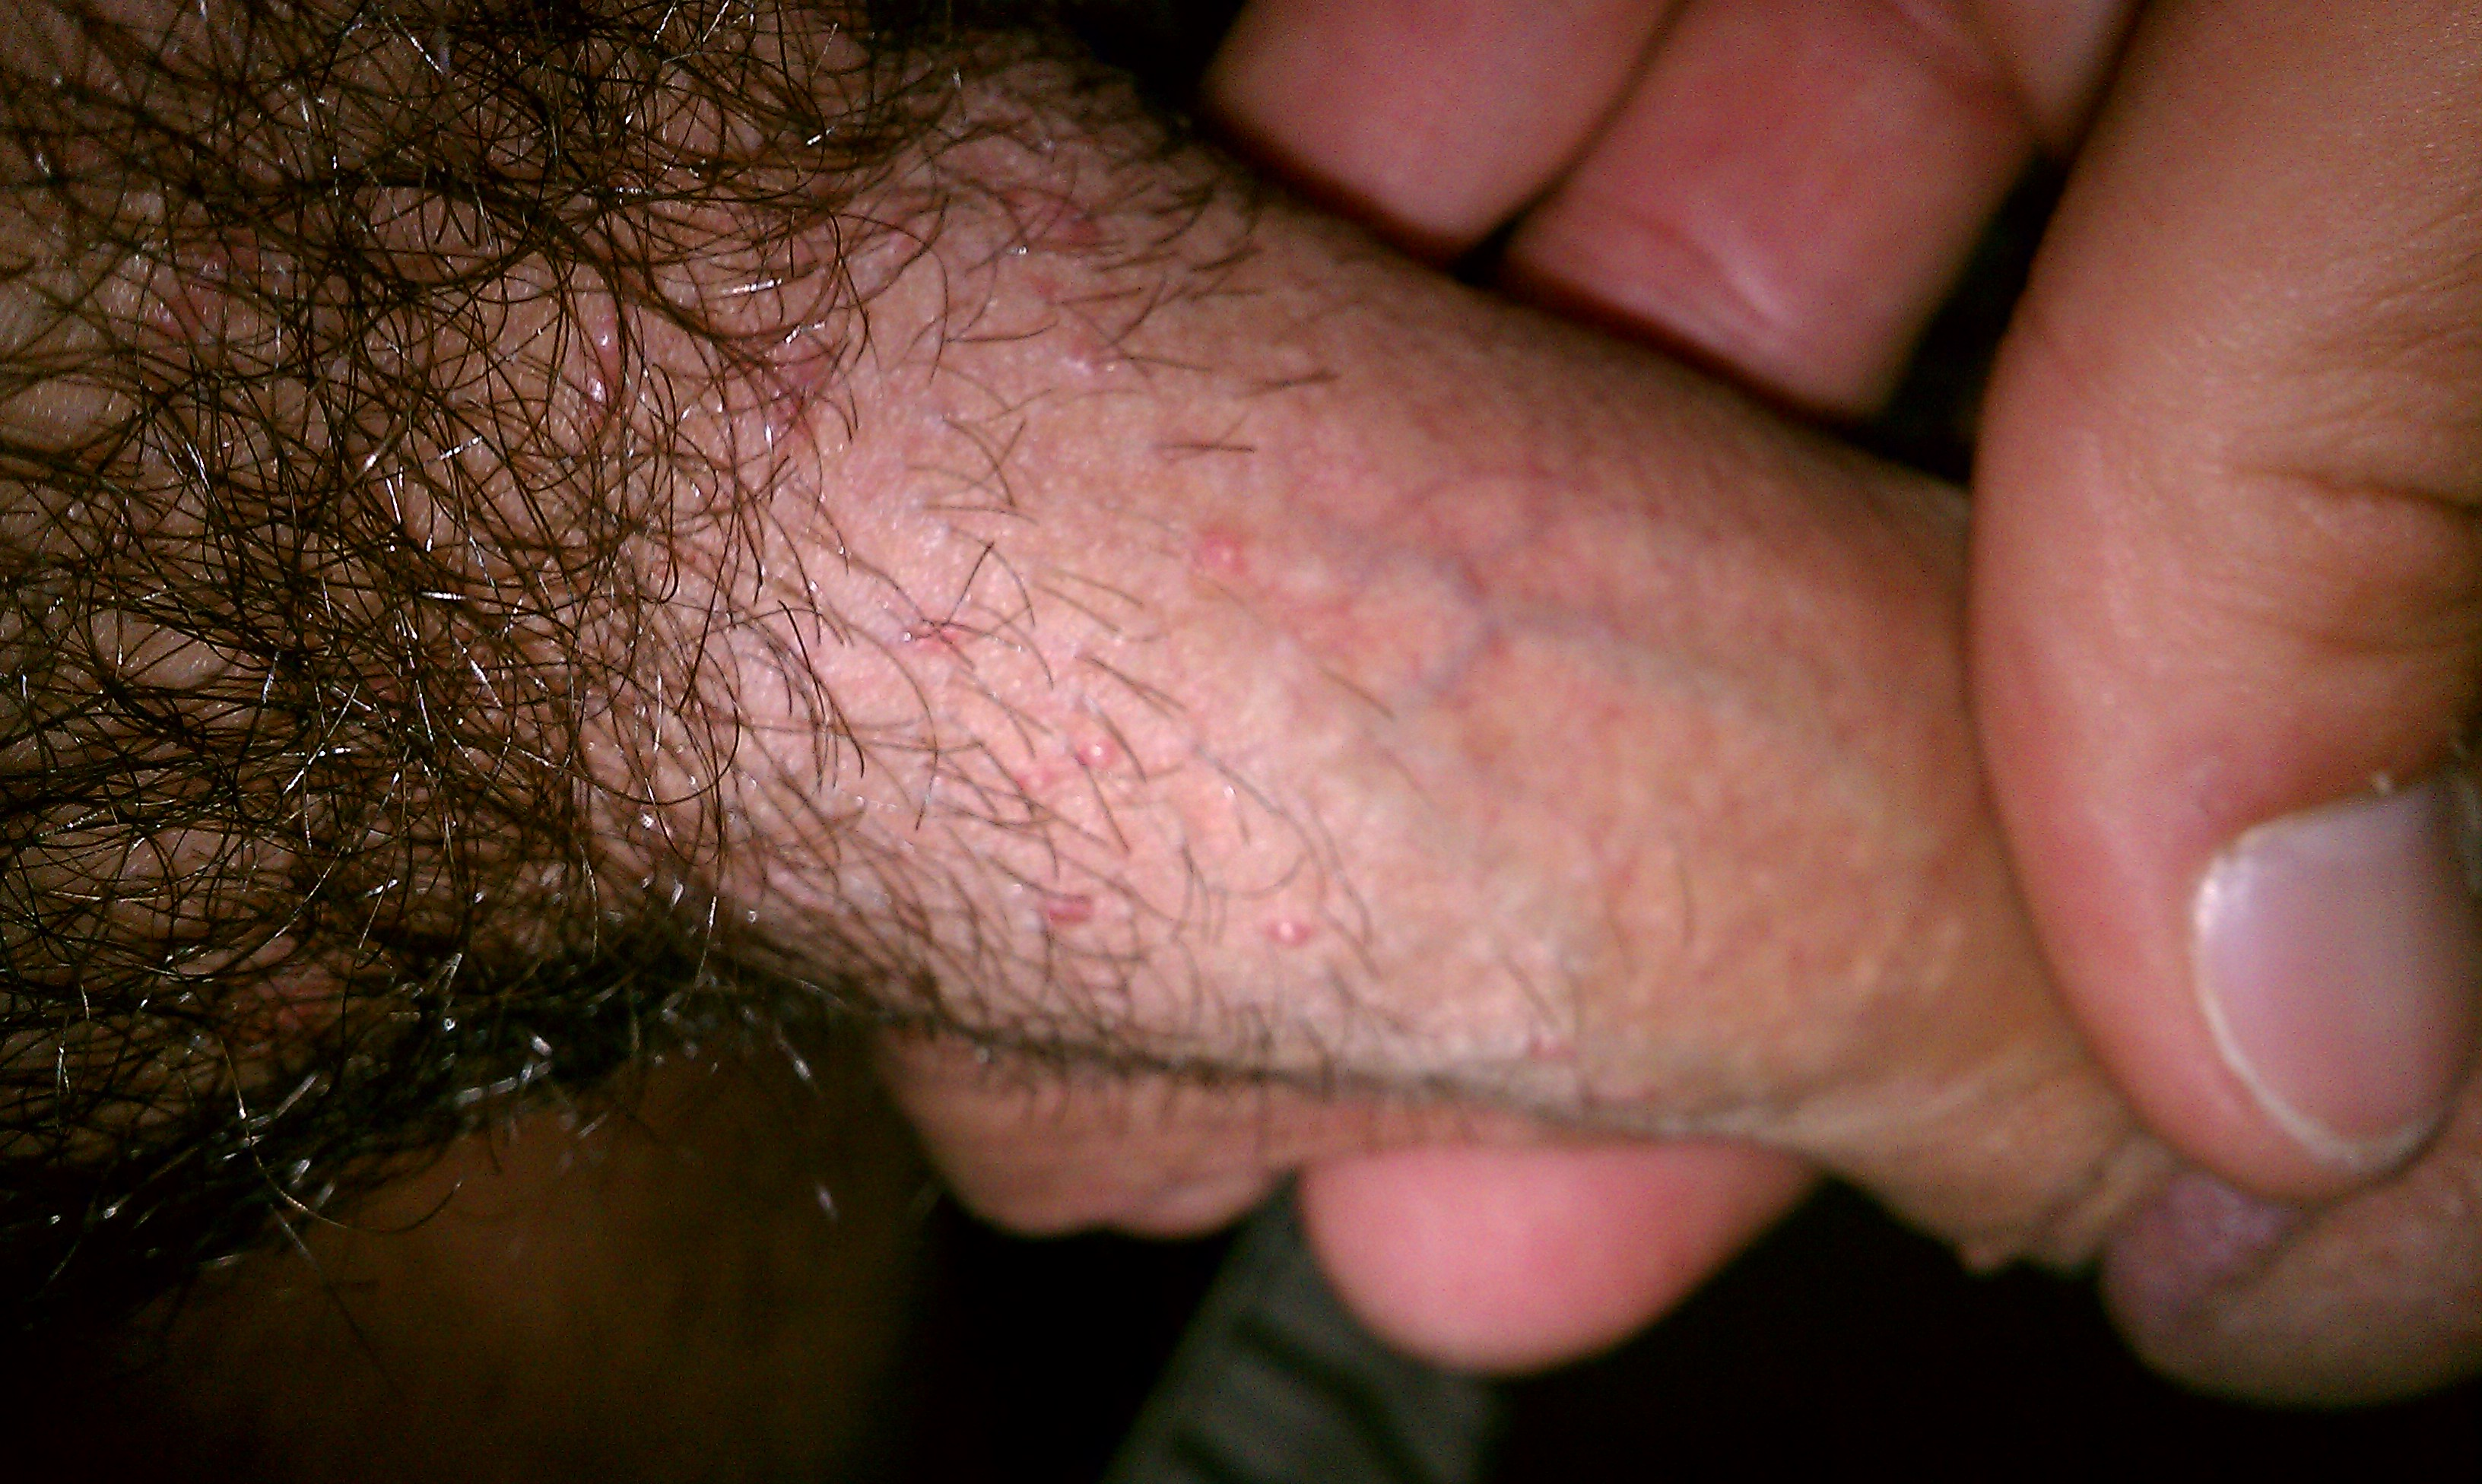 What are pimples around the penis